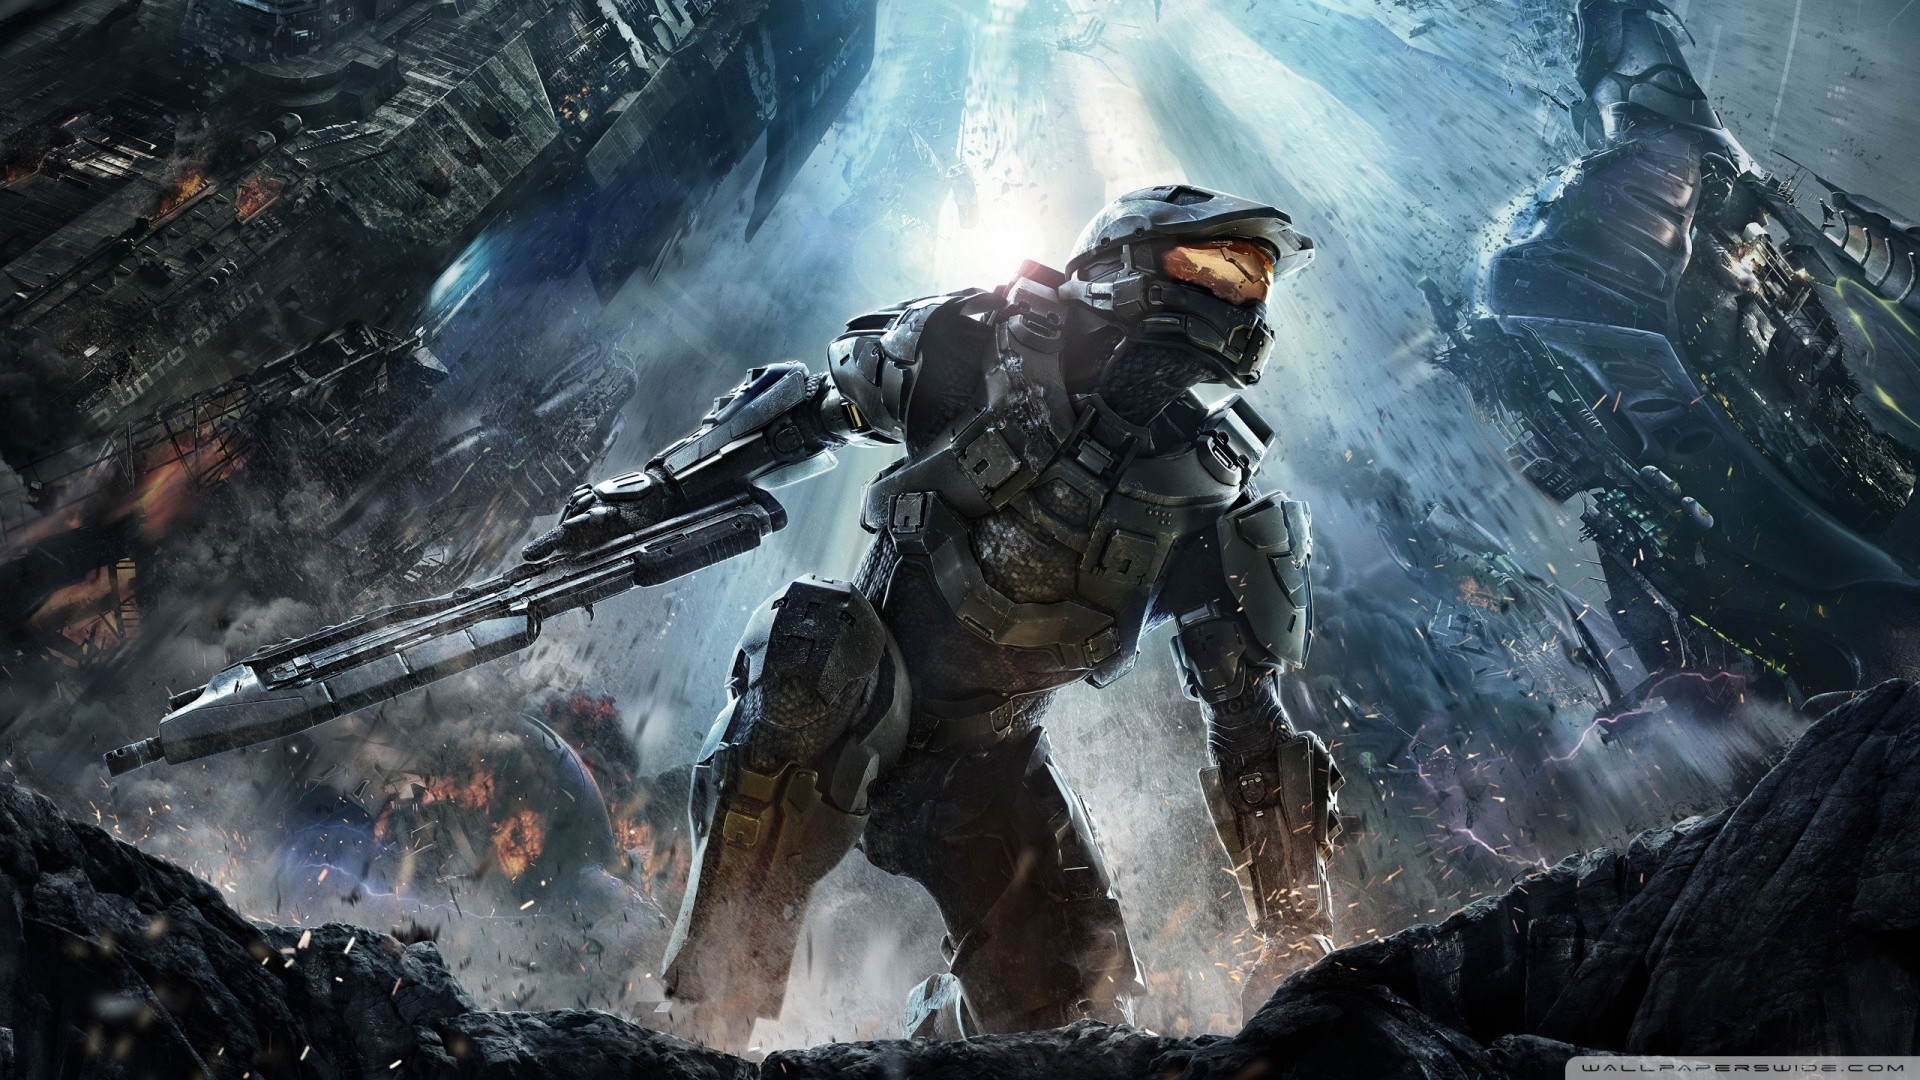 Halo 4 HD Backgrounds 79 images 1920x1080